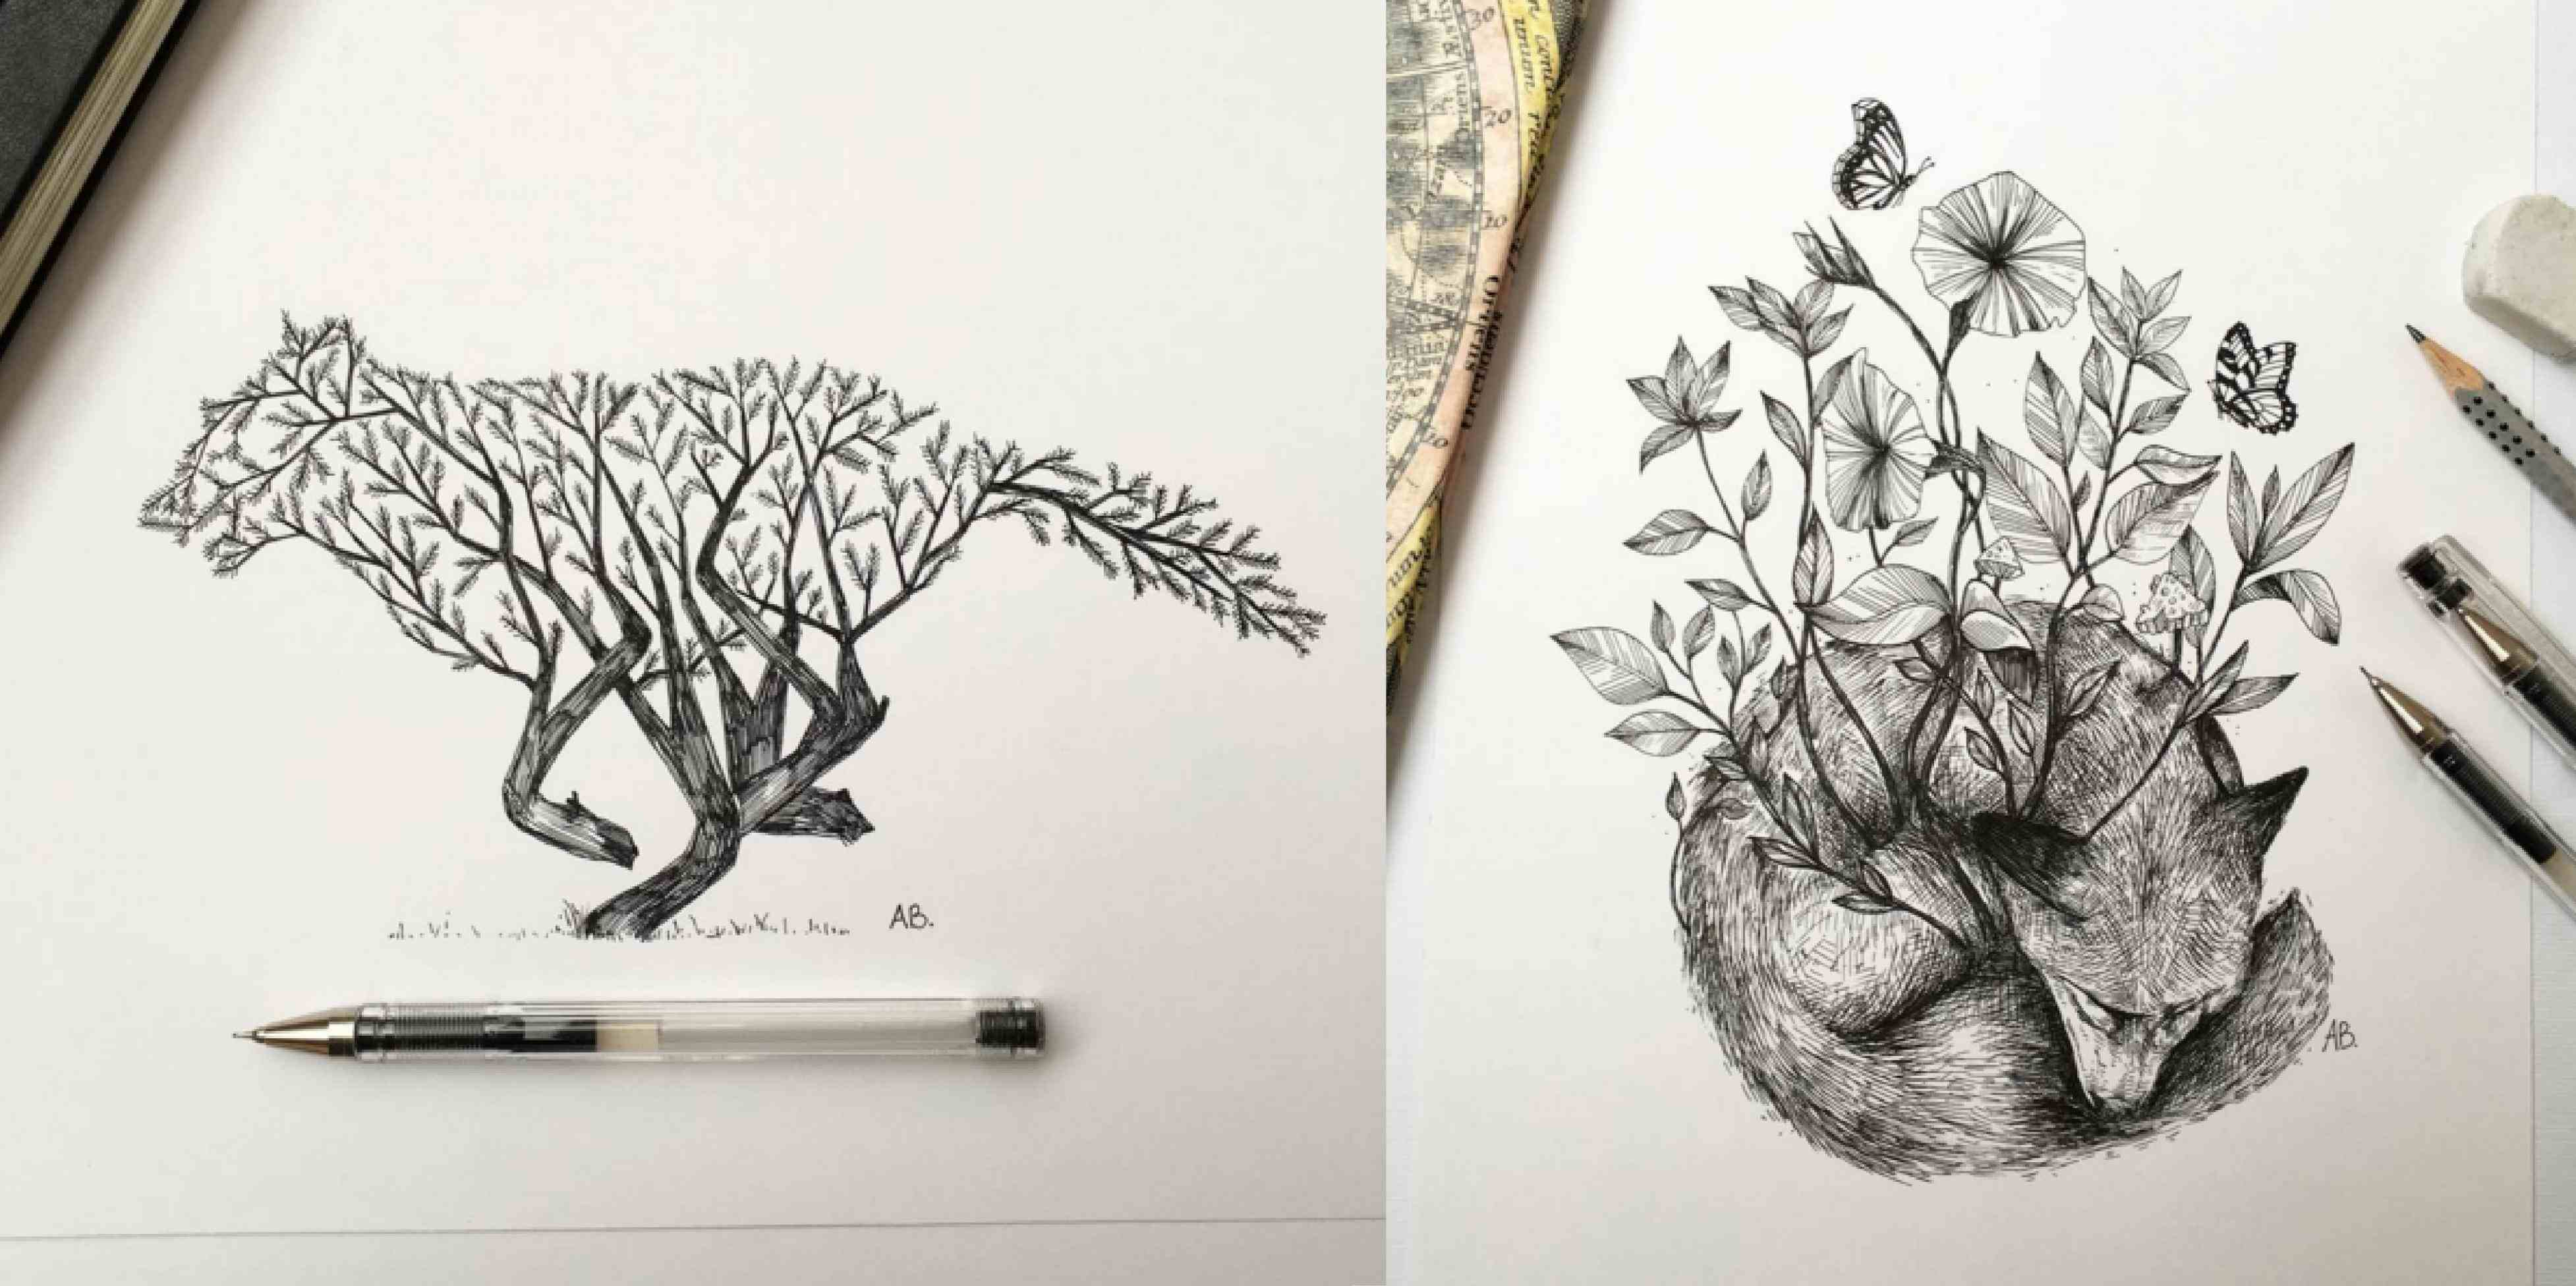 3909x1952 Creative Pencil Drawings Tumblr Creative Pencil Drawings Tumblr